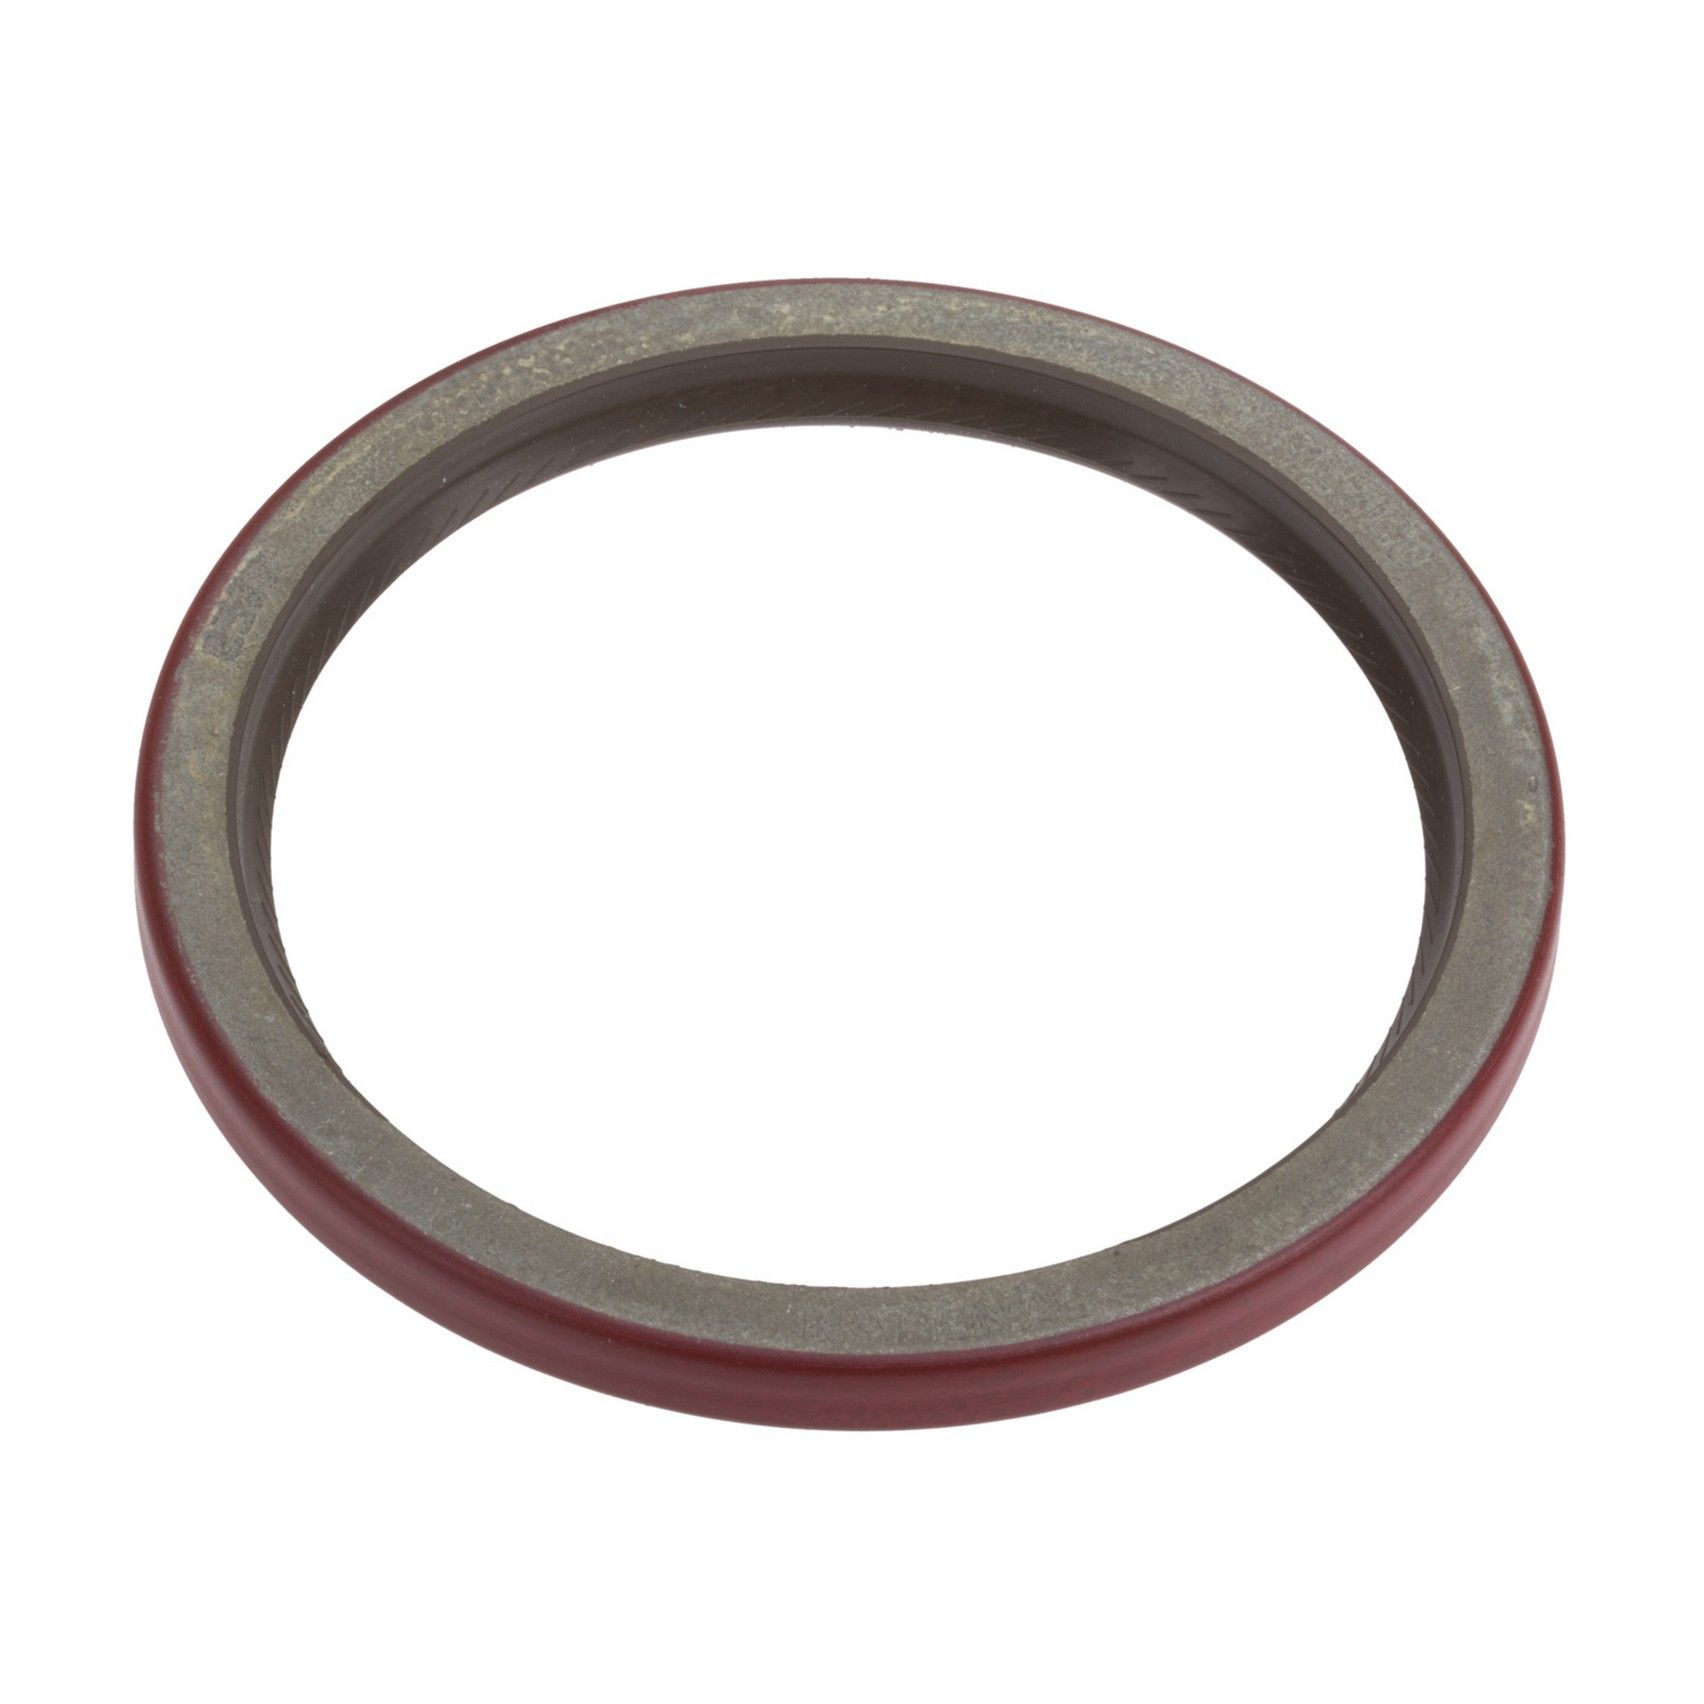 Ford F-150 Engine Crankshaft Seal Replacement (Genuine, Mahle